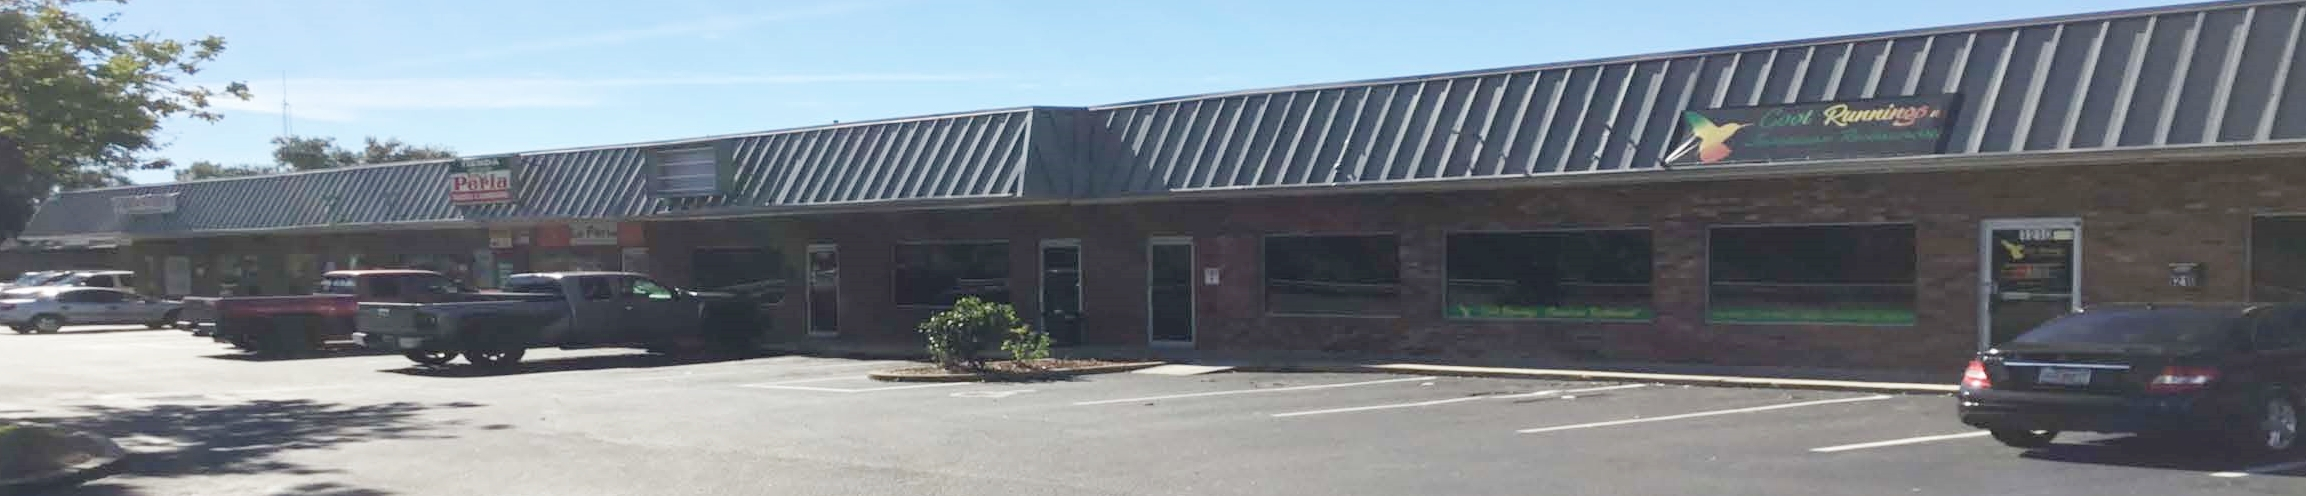 Multi-Tenant Investment Opportunity, Daytona Beach, FL. Located in the Opportunity Zone (Tax Incentives)